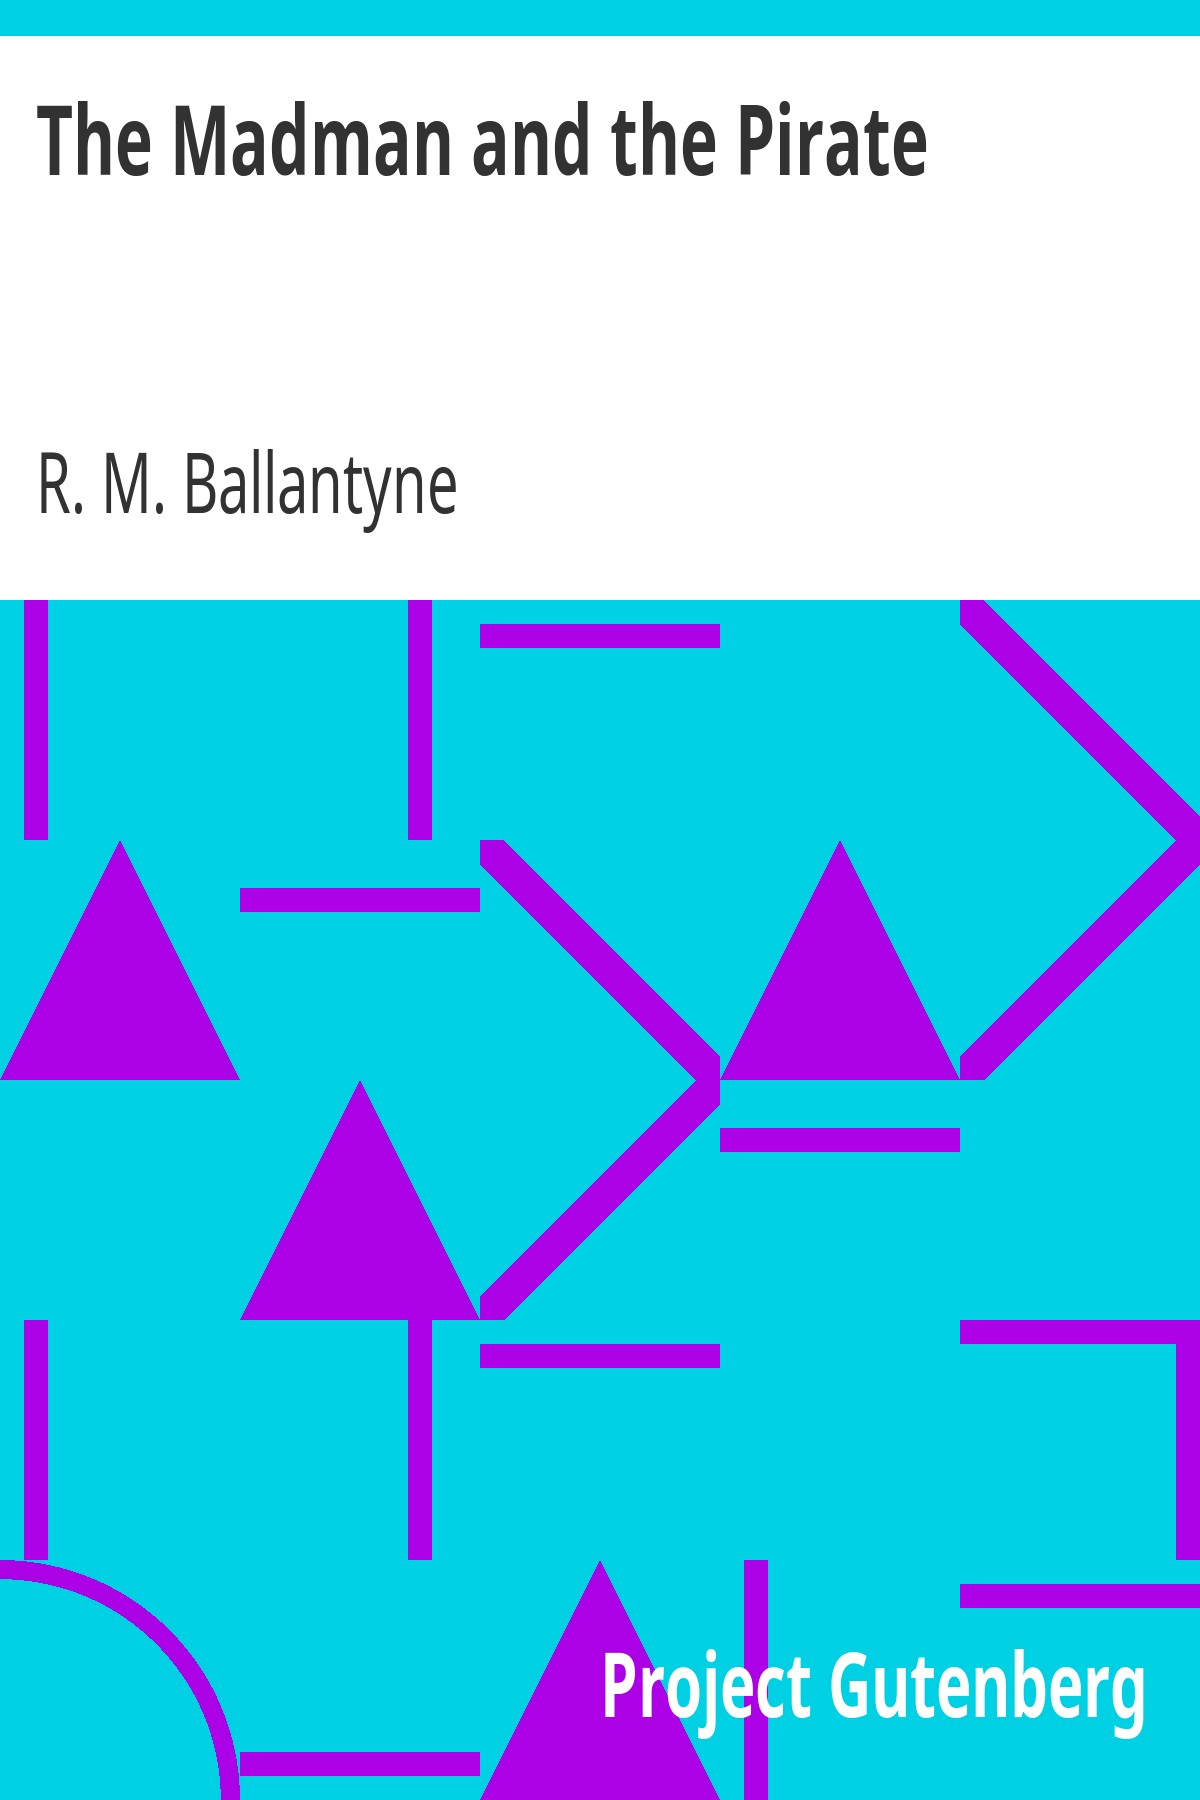 R. M. Ballantyne The Madman and the Pirate